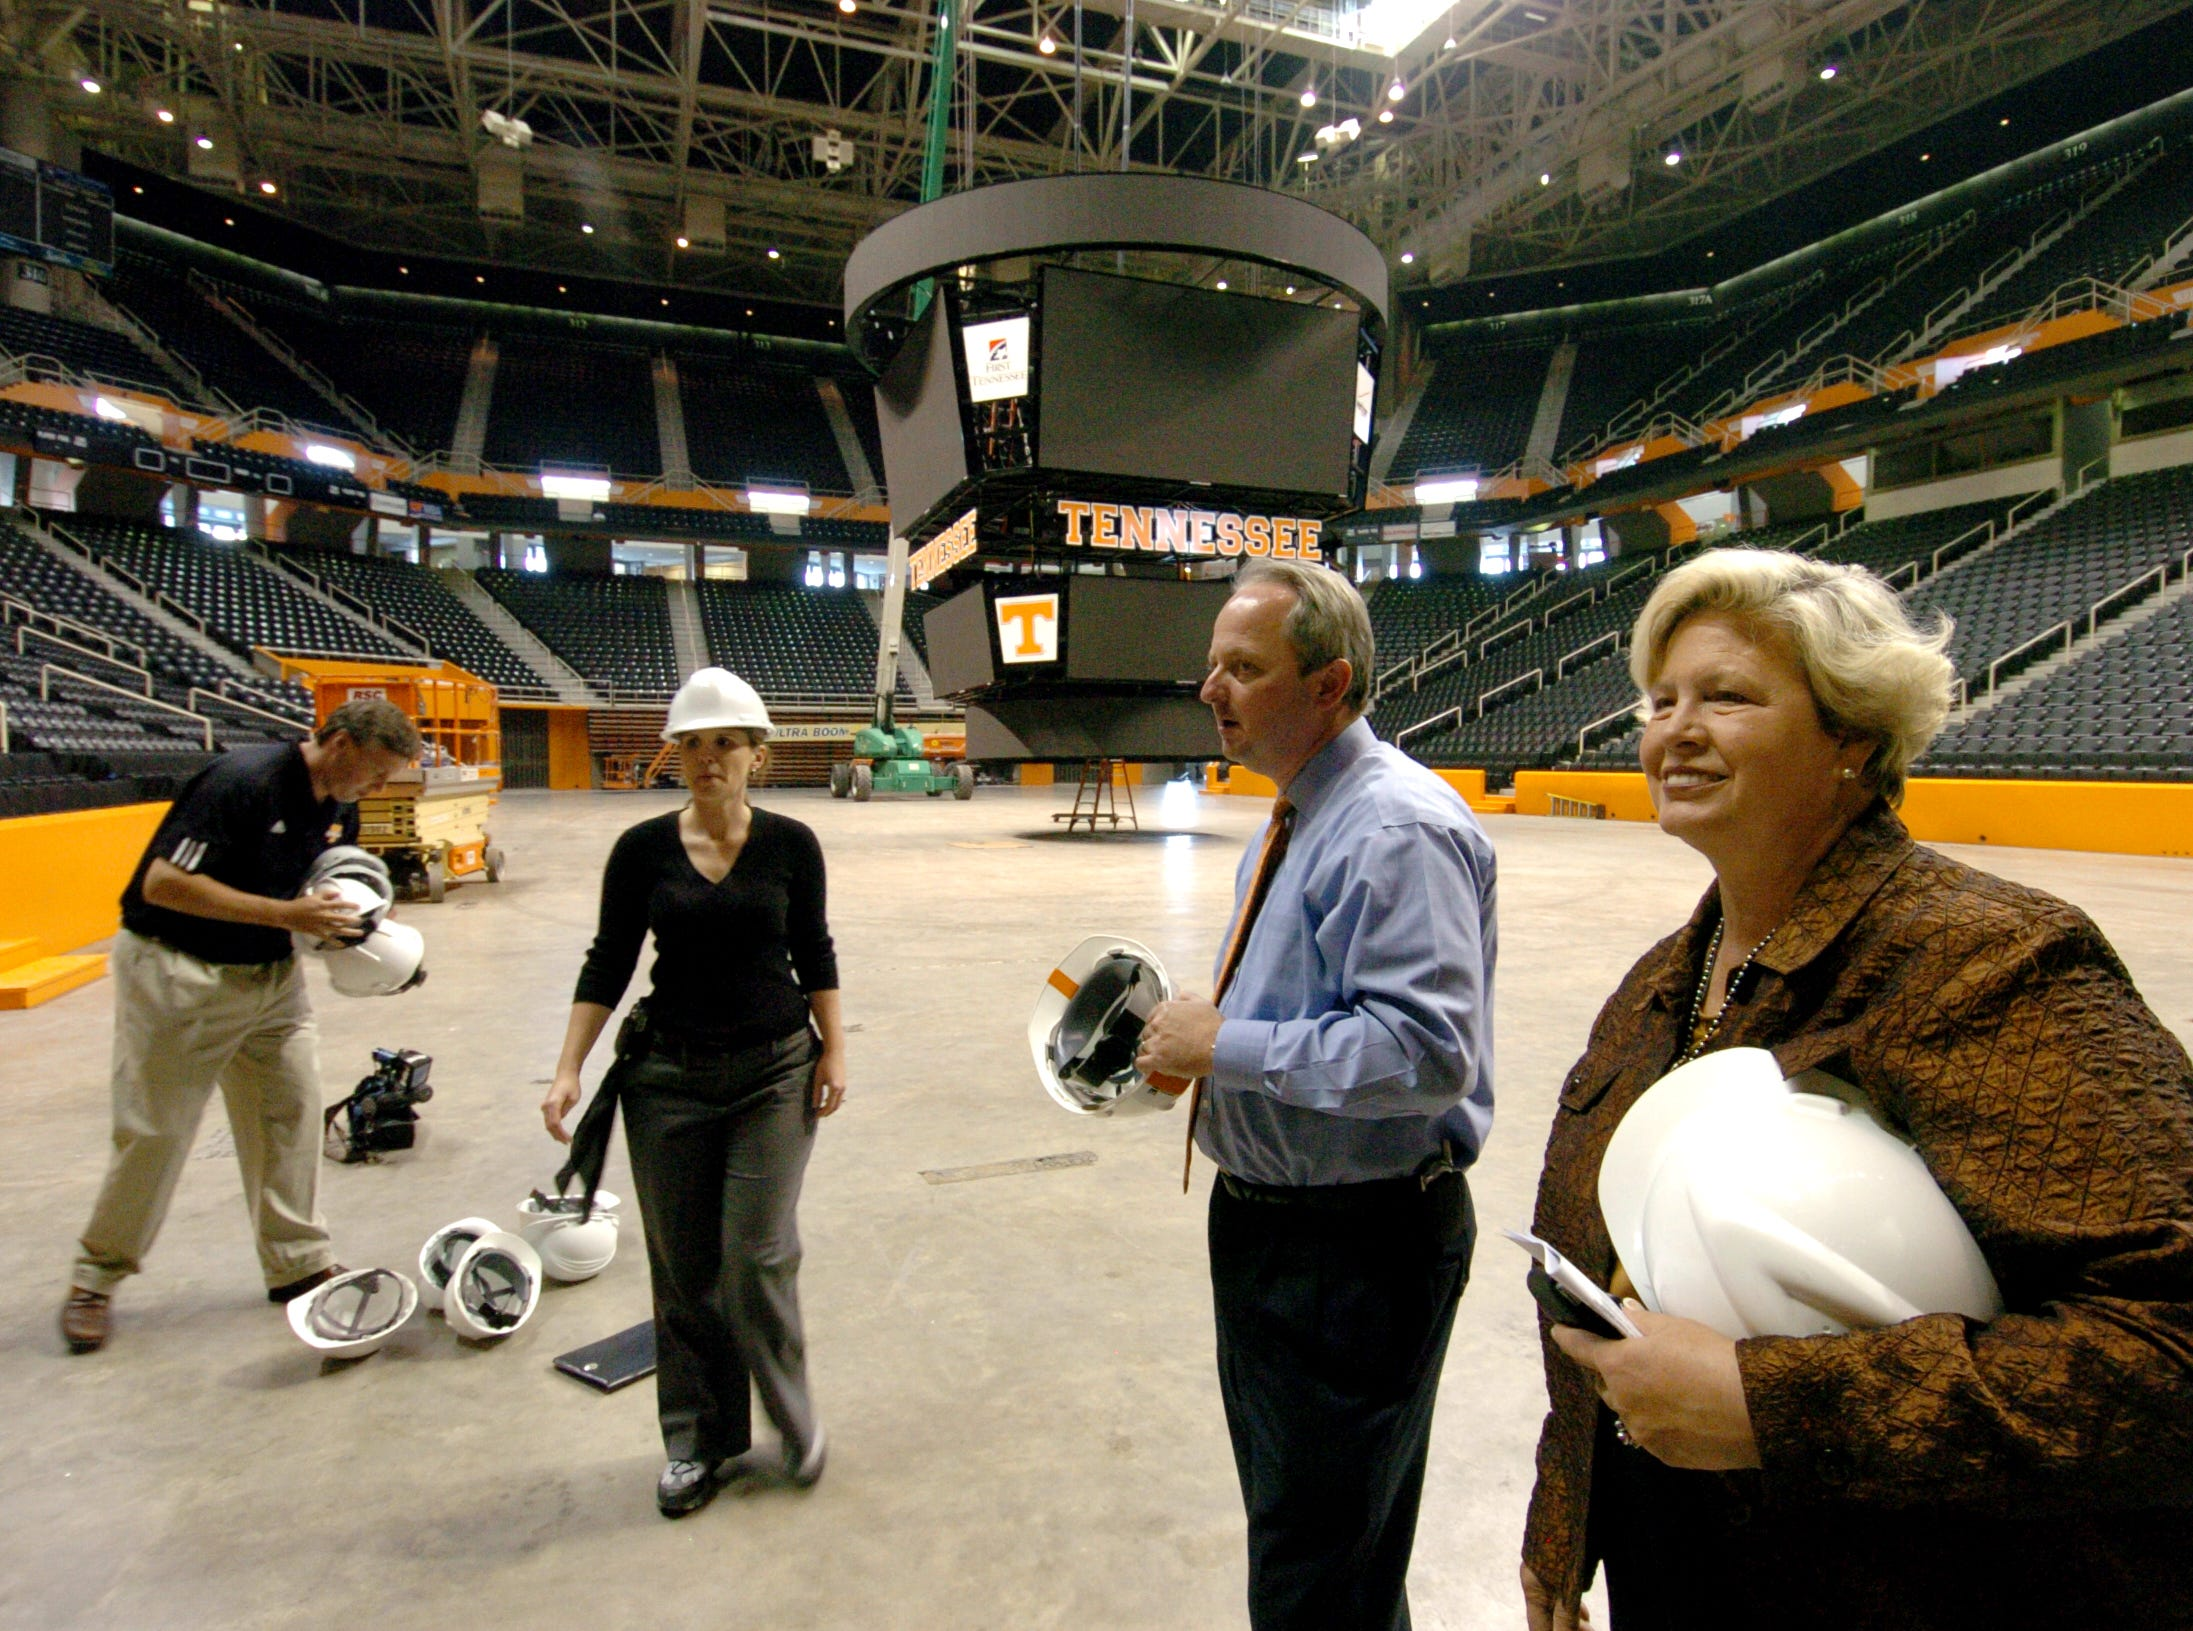 University of Tennessee athletics directors Mike Halilton and Joan Cronan during a media tour of the new Pratt Pavilion and remodeled Thompson-Boling Arena.